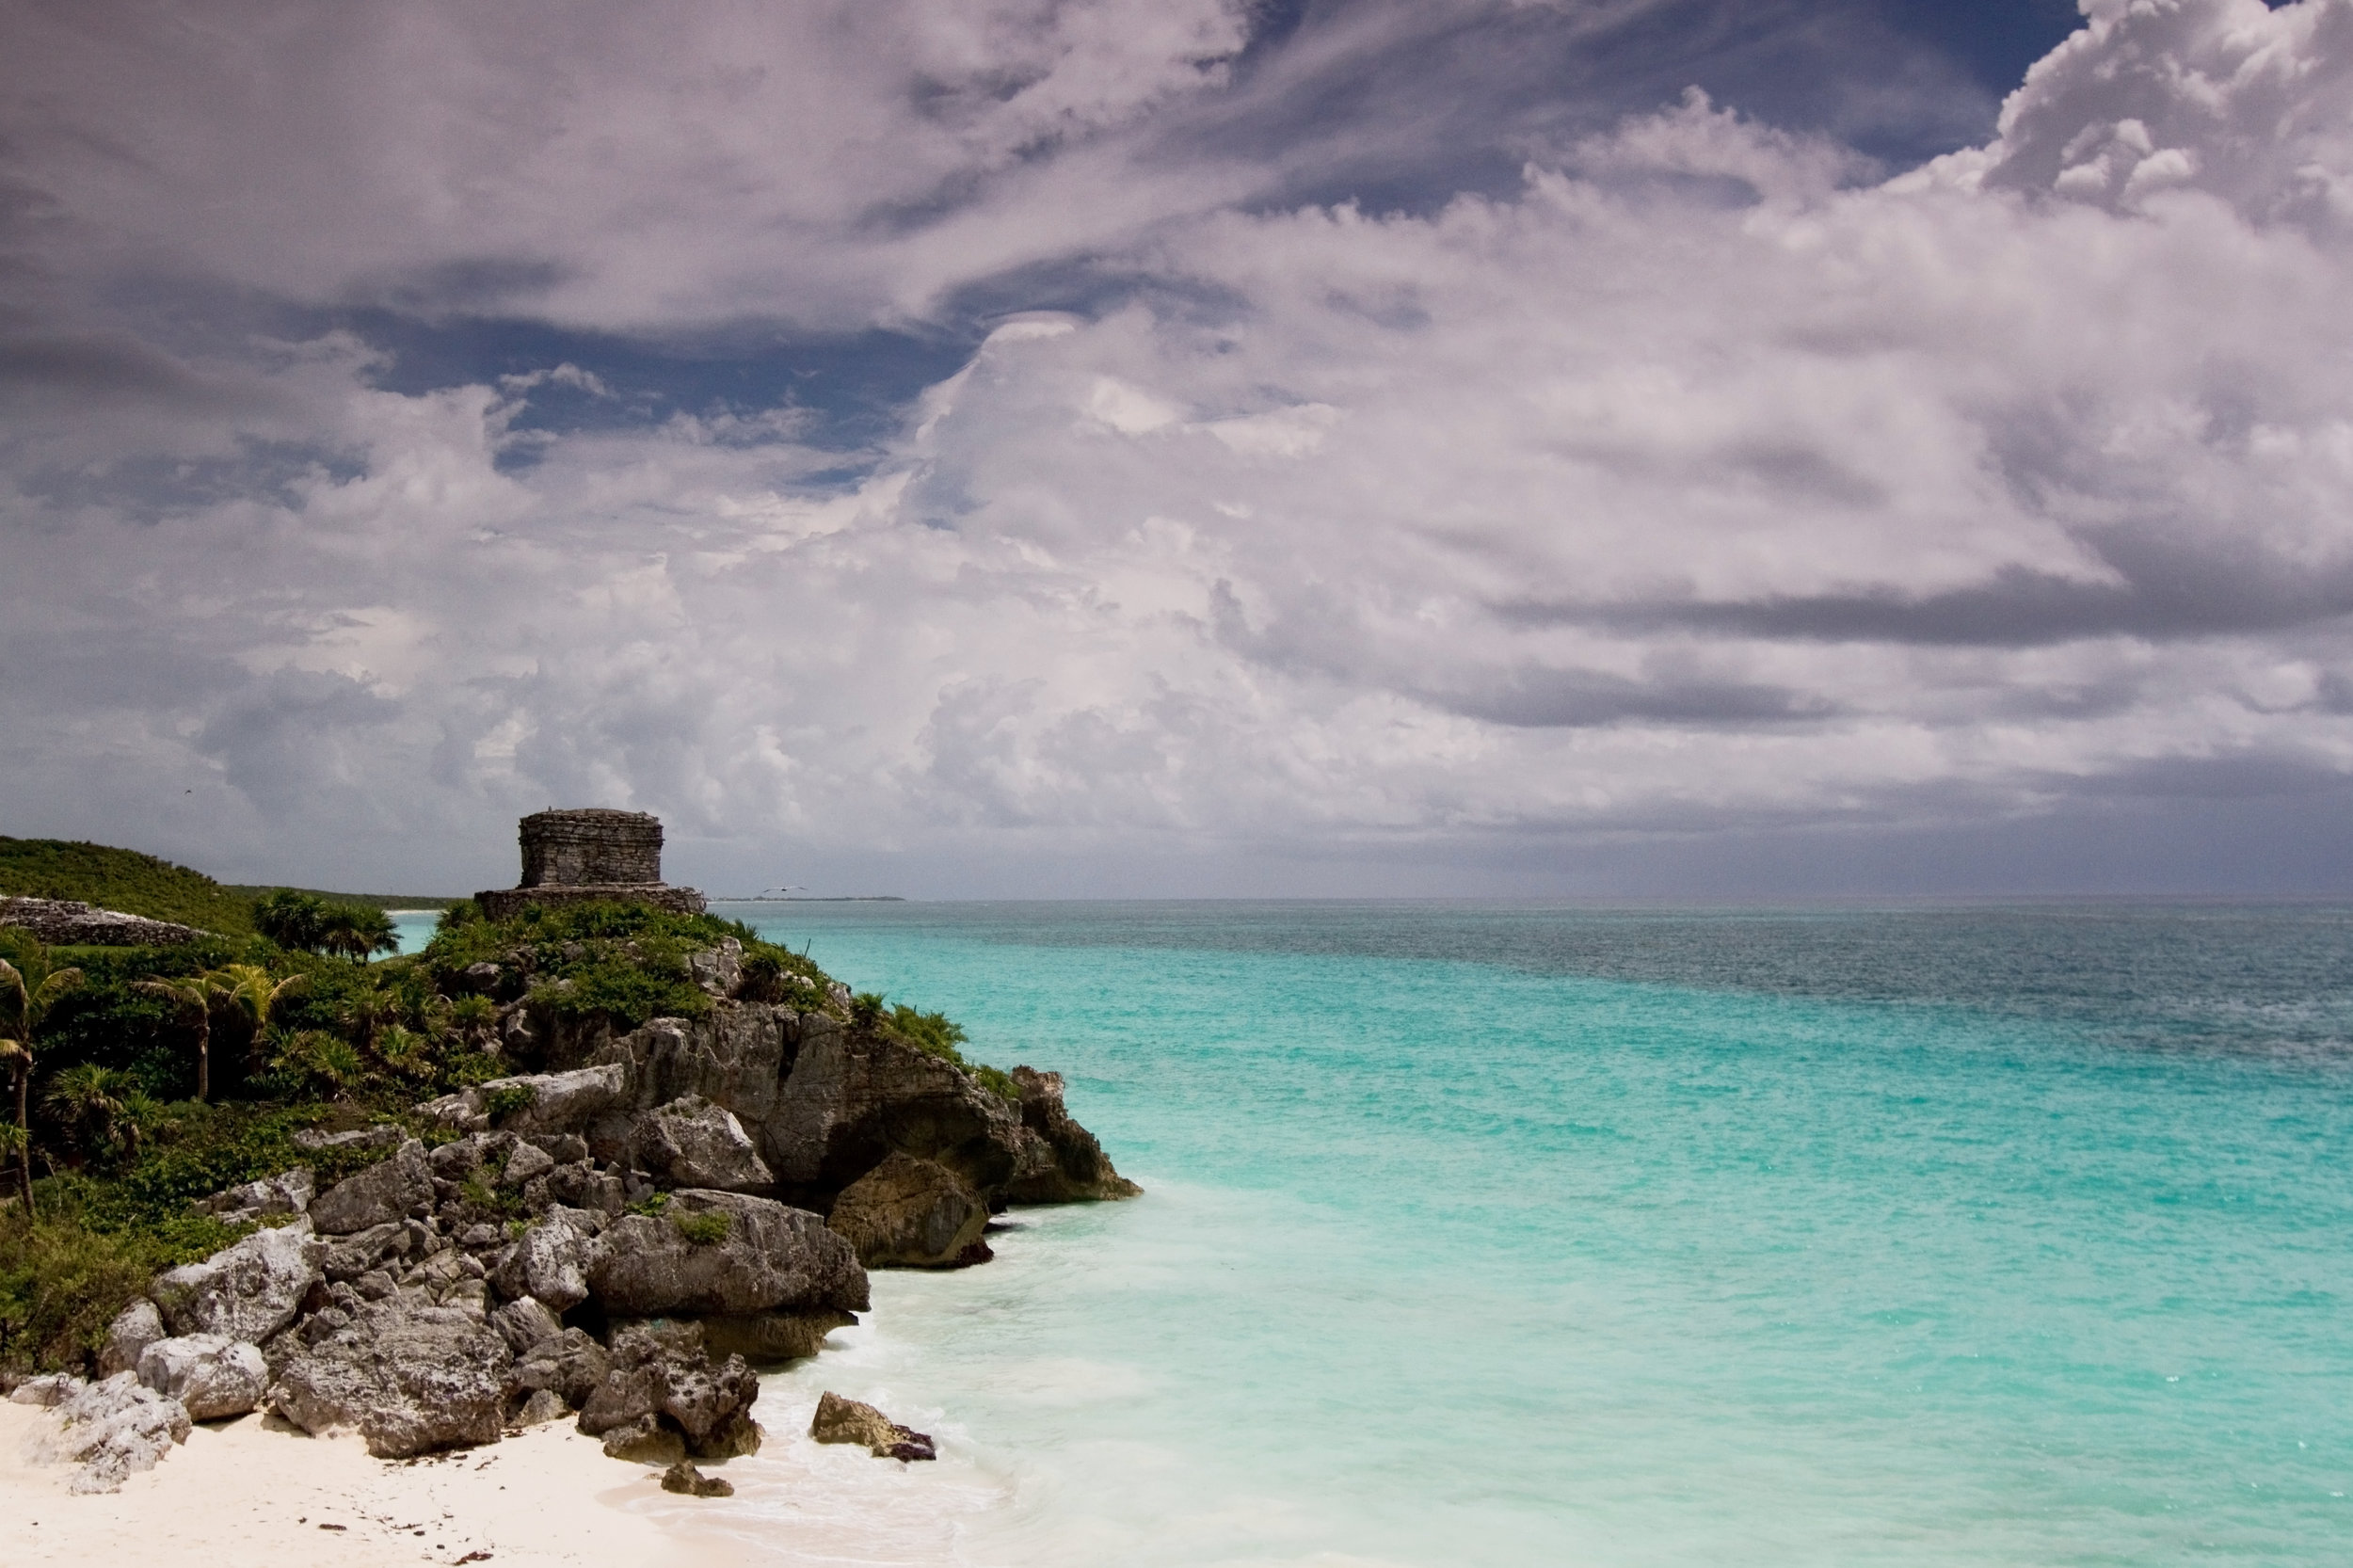 The ruins at Tulum are just one of the many attractions near Cancun, Mexico, whose low season happens to correspond with the peak season for weddings in the U.S. (May, June, and July), making it an excellent choice as a honeymoon destination.